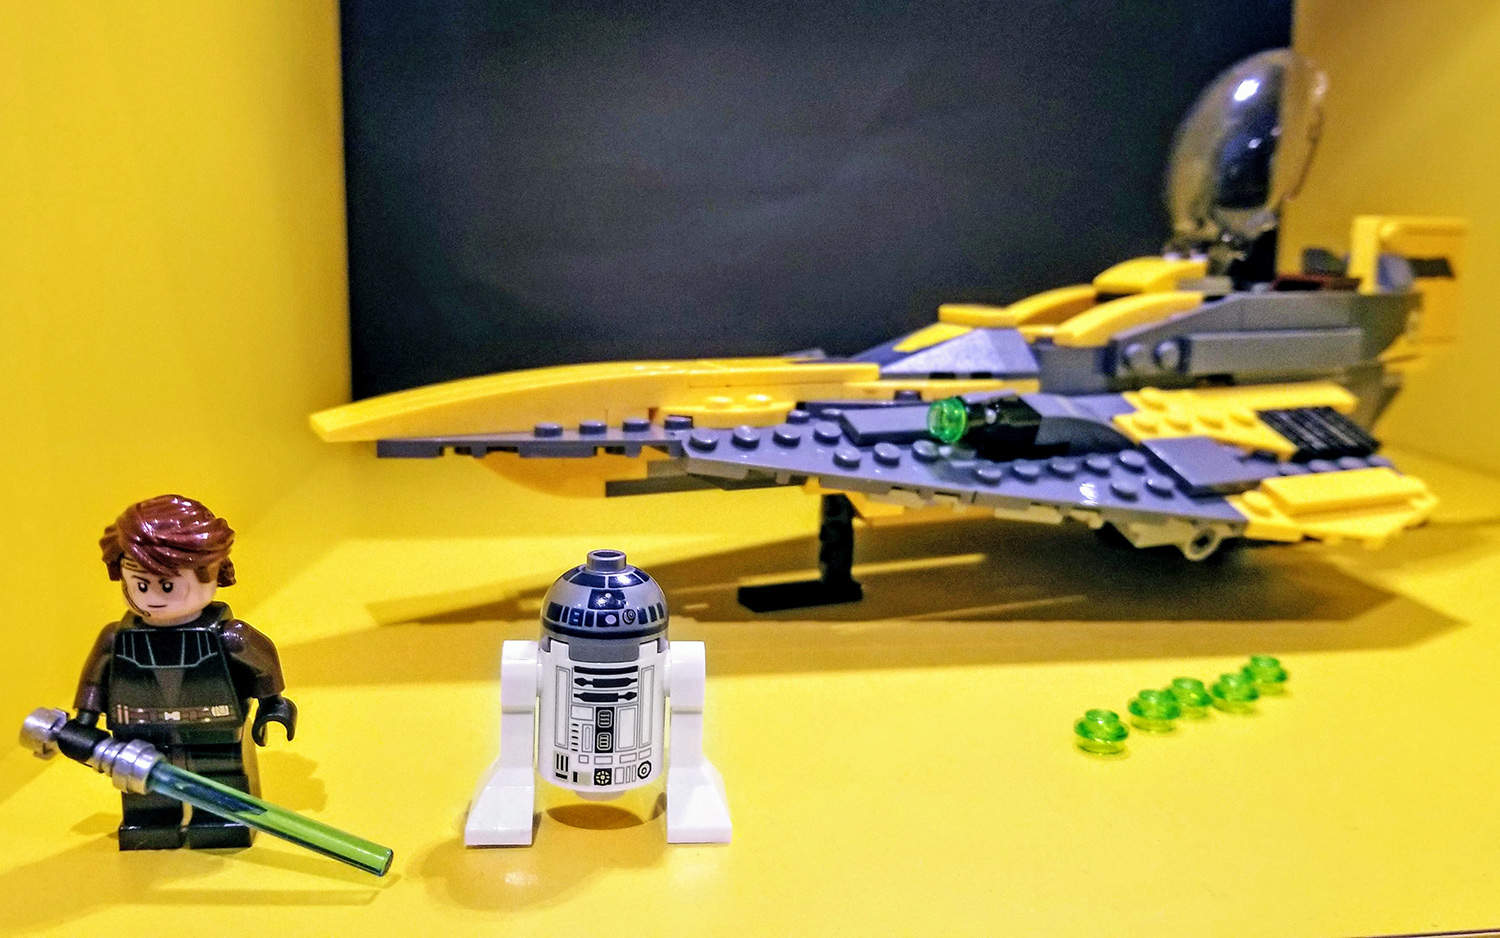 New 'Star Wars' Lego Sets Released in August 2018 | Space